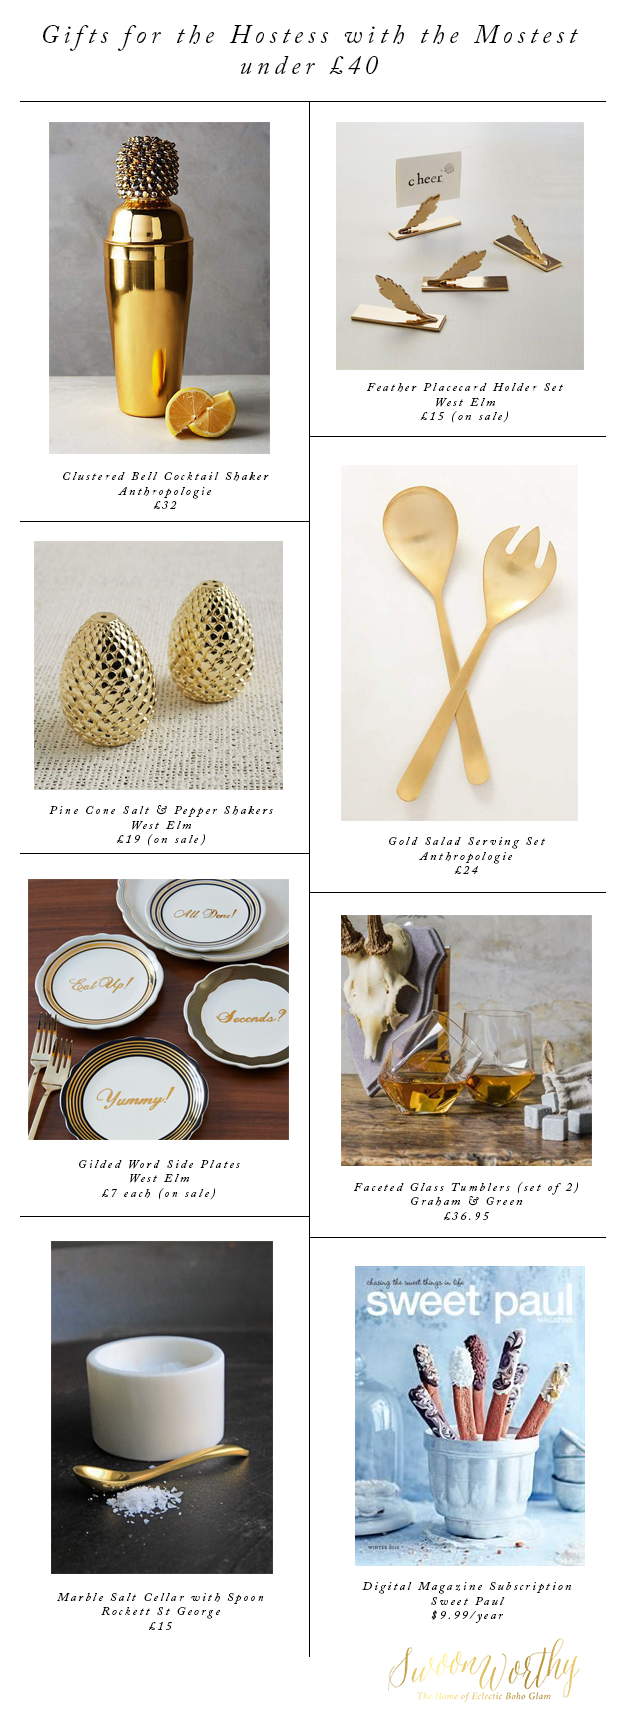 Gifts for the Hostess with the Mostess - Christmas Gift Guide - Swoon Worthy